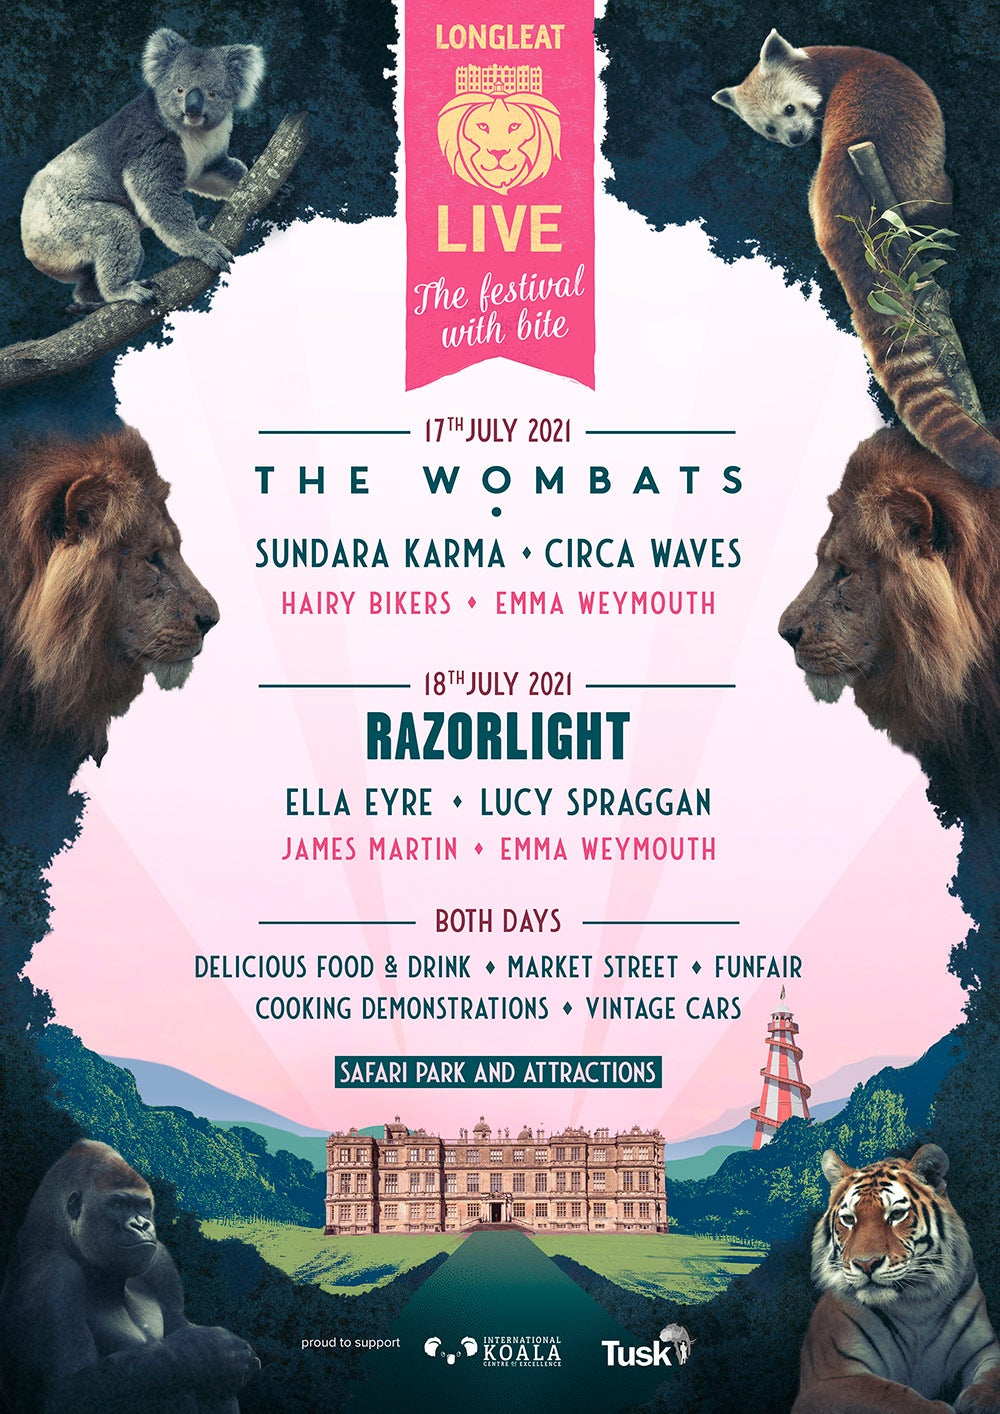 Longleat Live Festival Line-up and music acts 2020